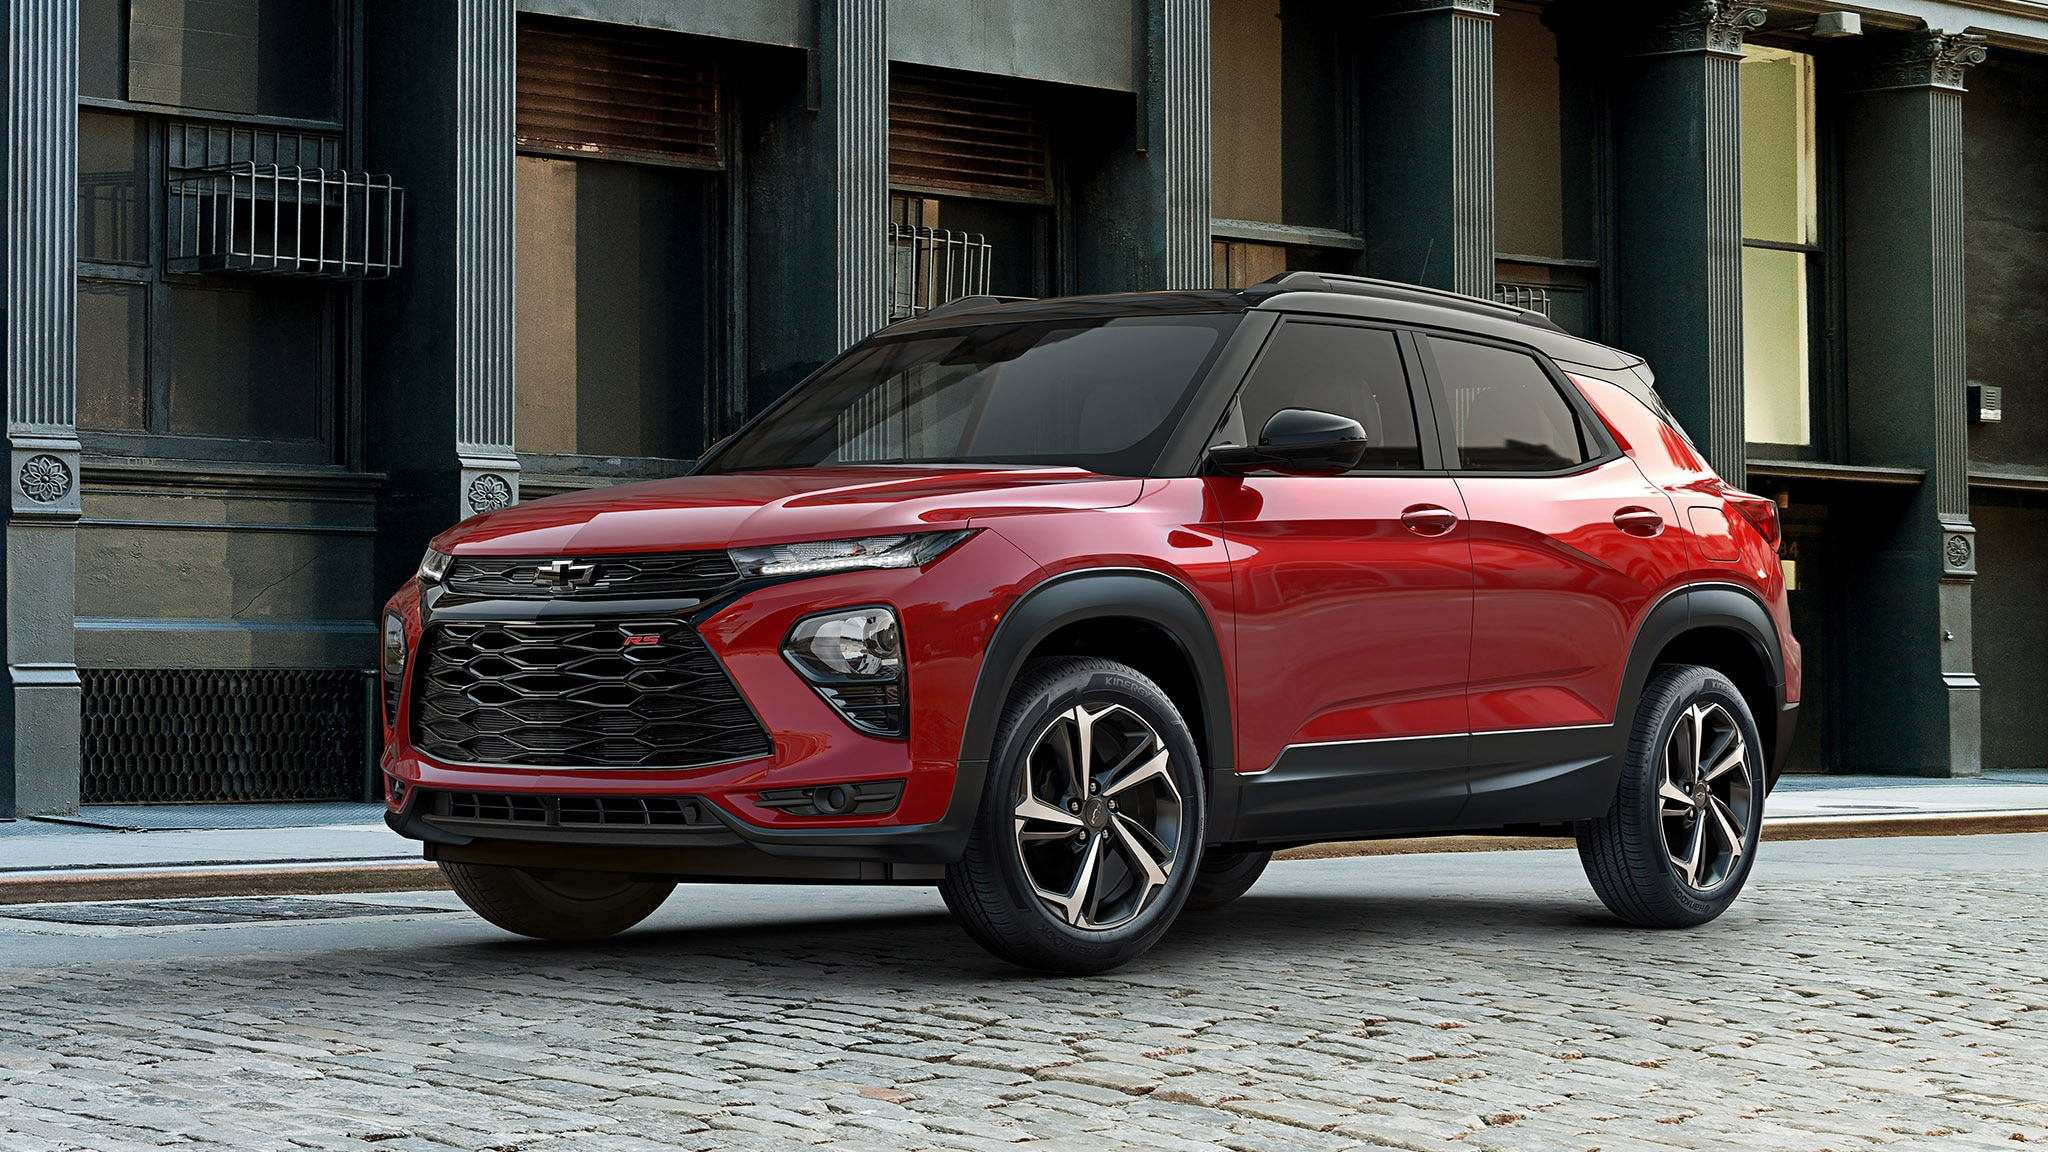 The New Chevrolet Trailblazer Is Confirmed for the U.S.